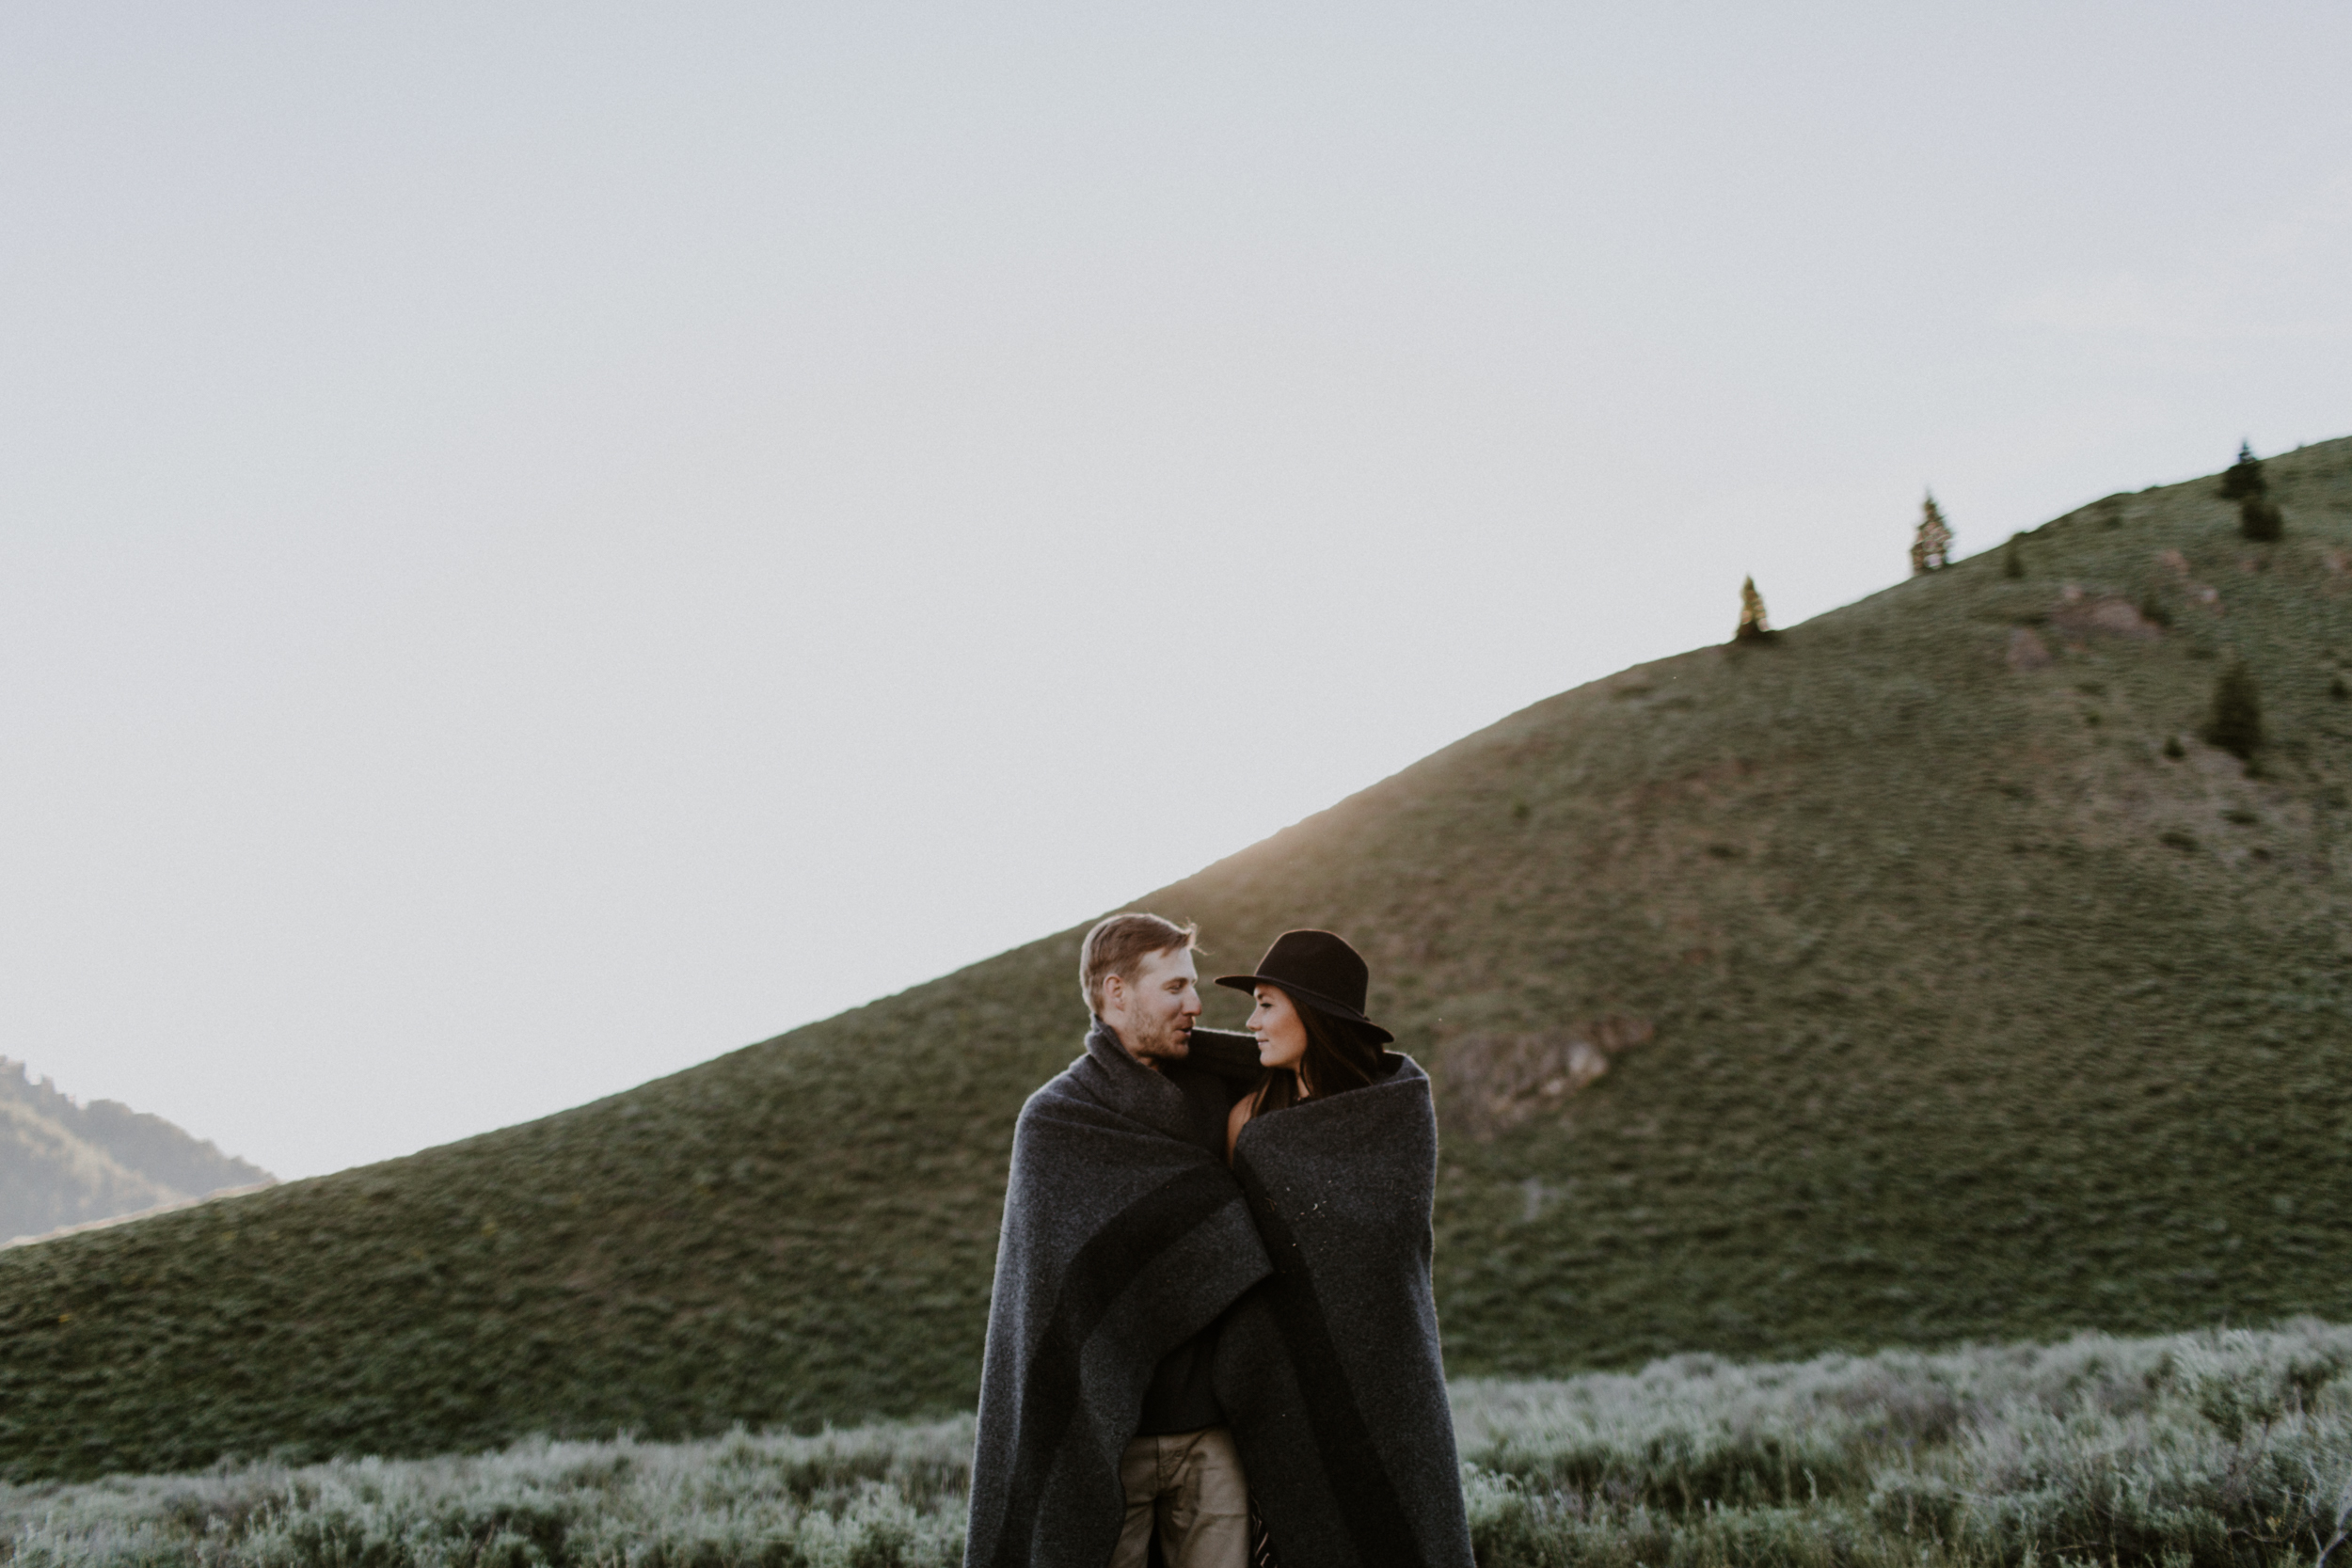 sun_valley_engagement_christinemariephoto-25.jpg